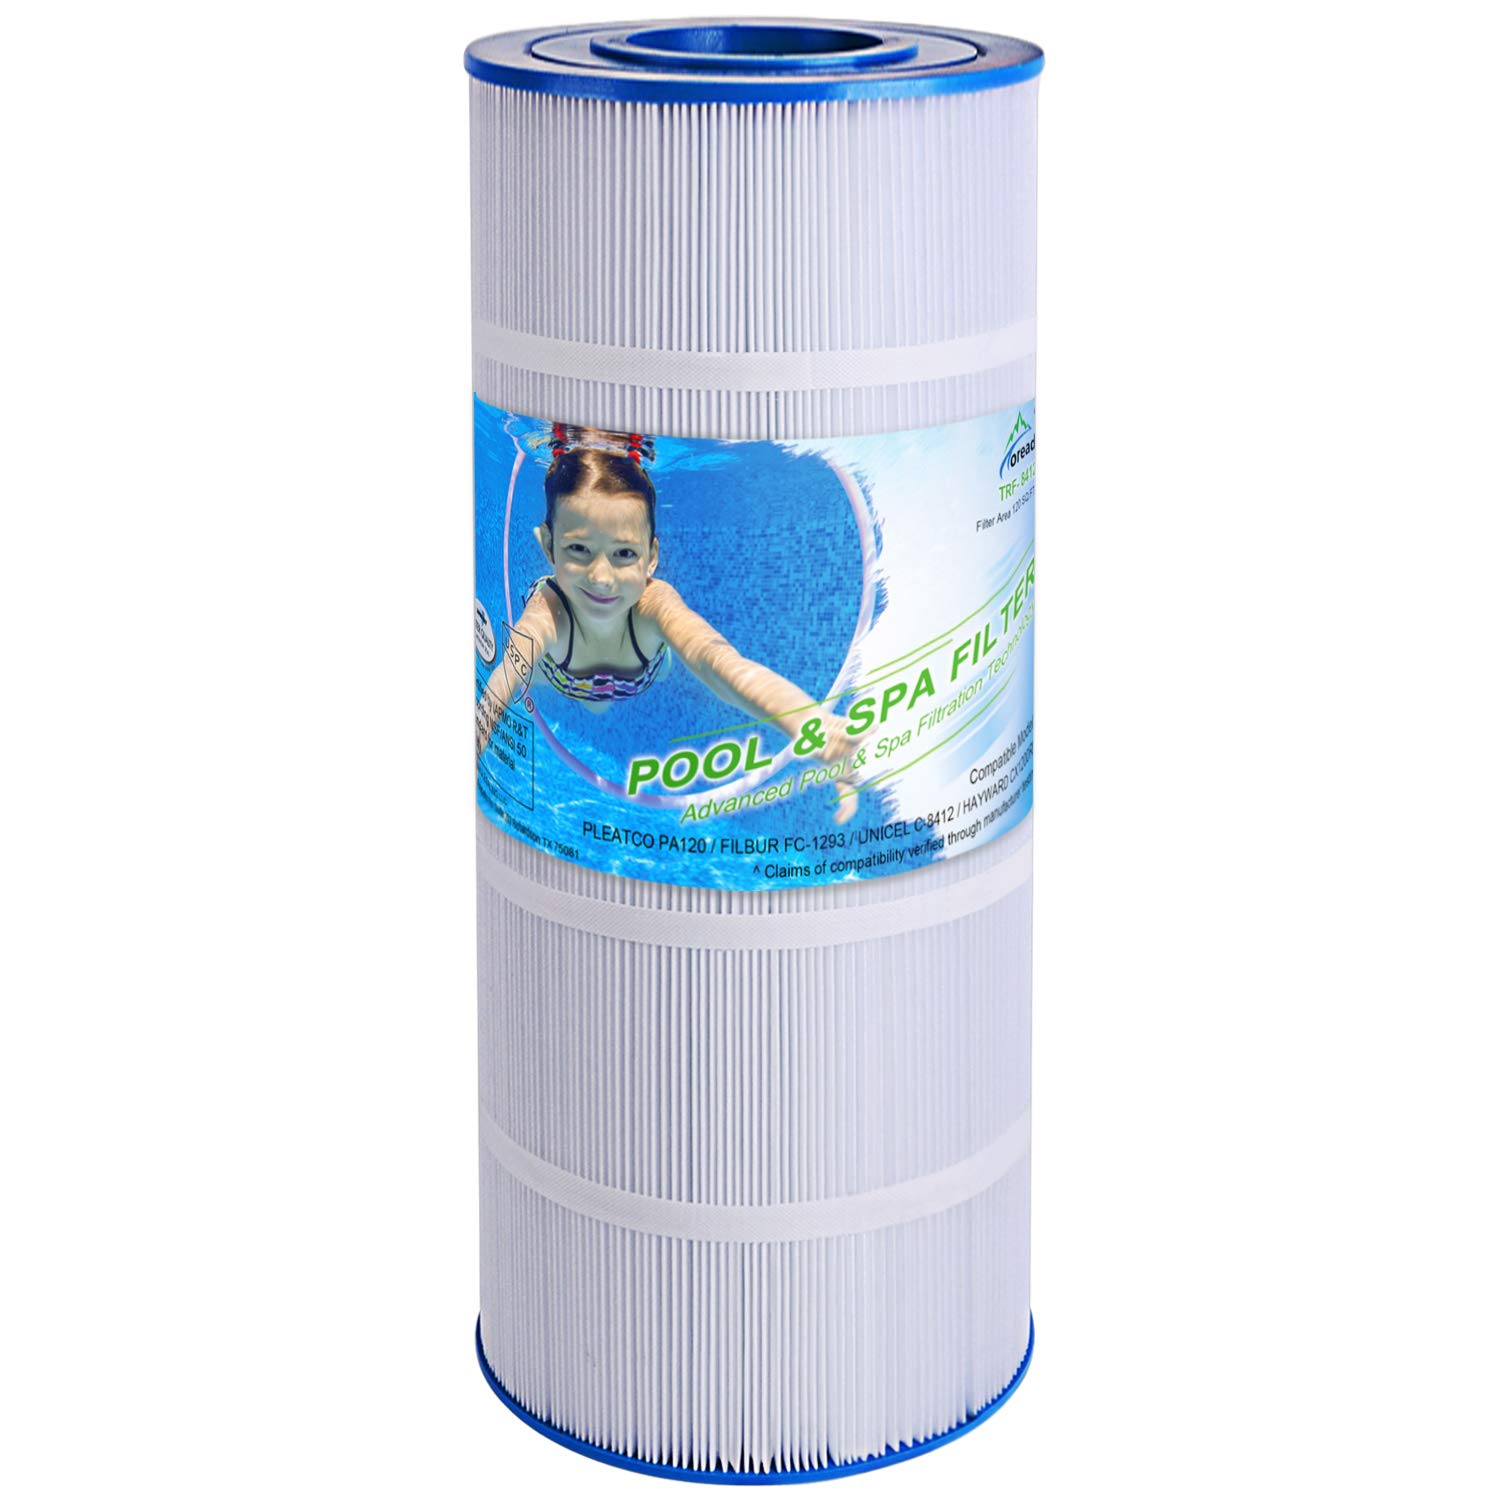 Pleatco PA120 for Hayward Star Clear Filter C-1200 Unicel C-8412 Pool Cartridge